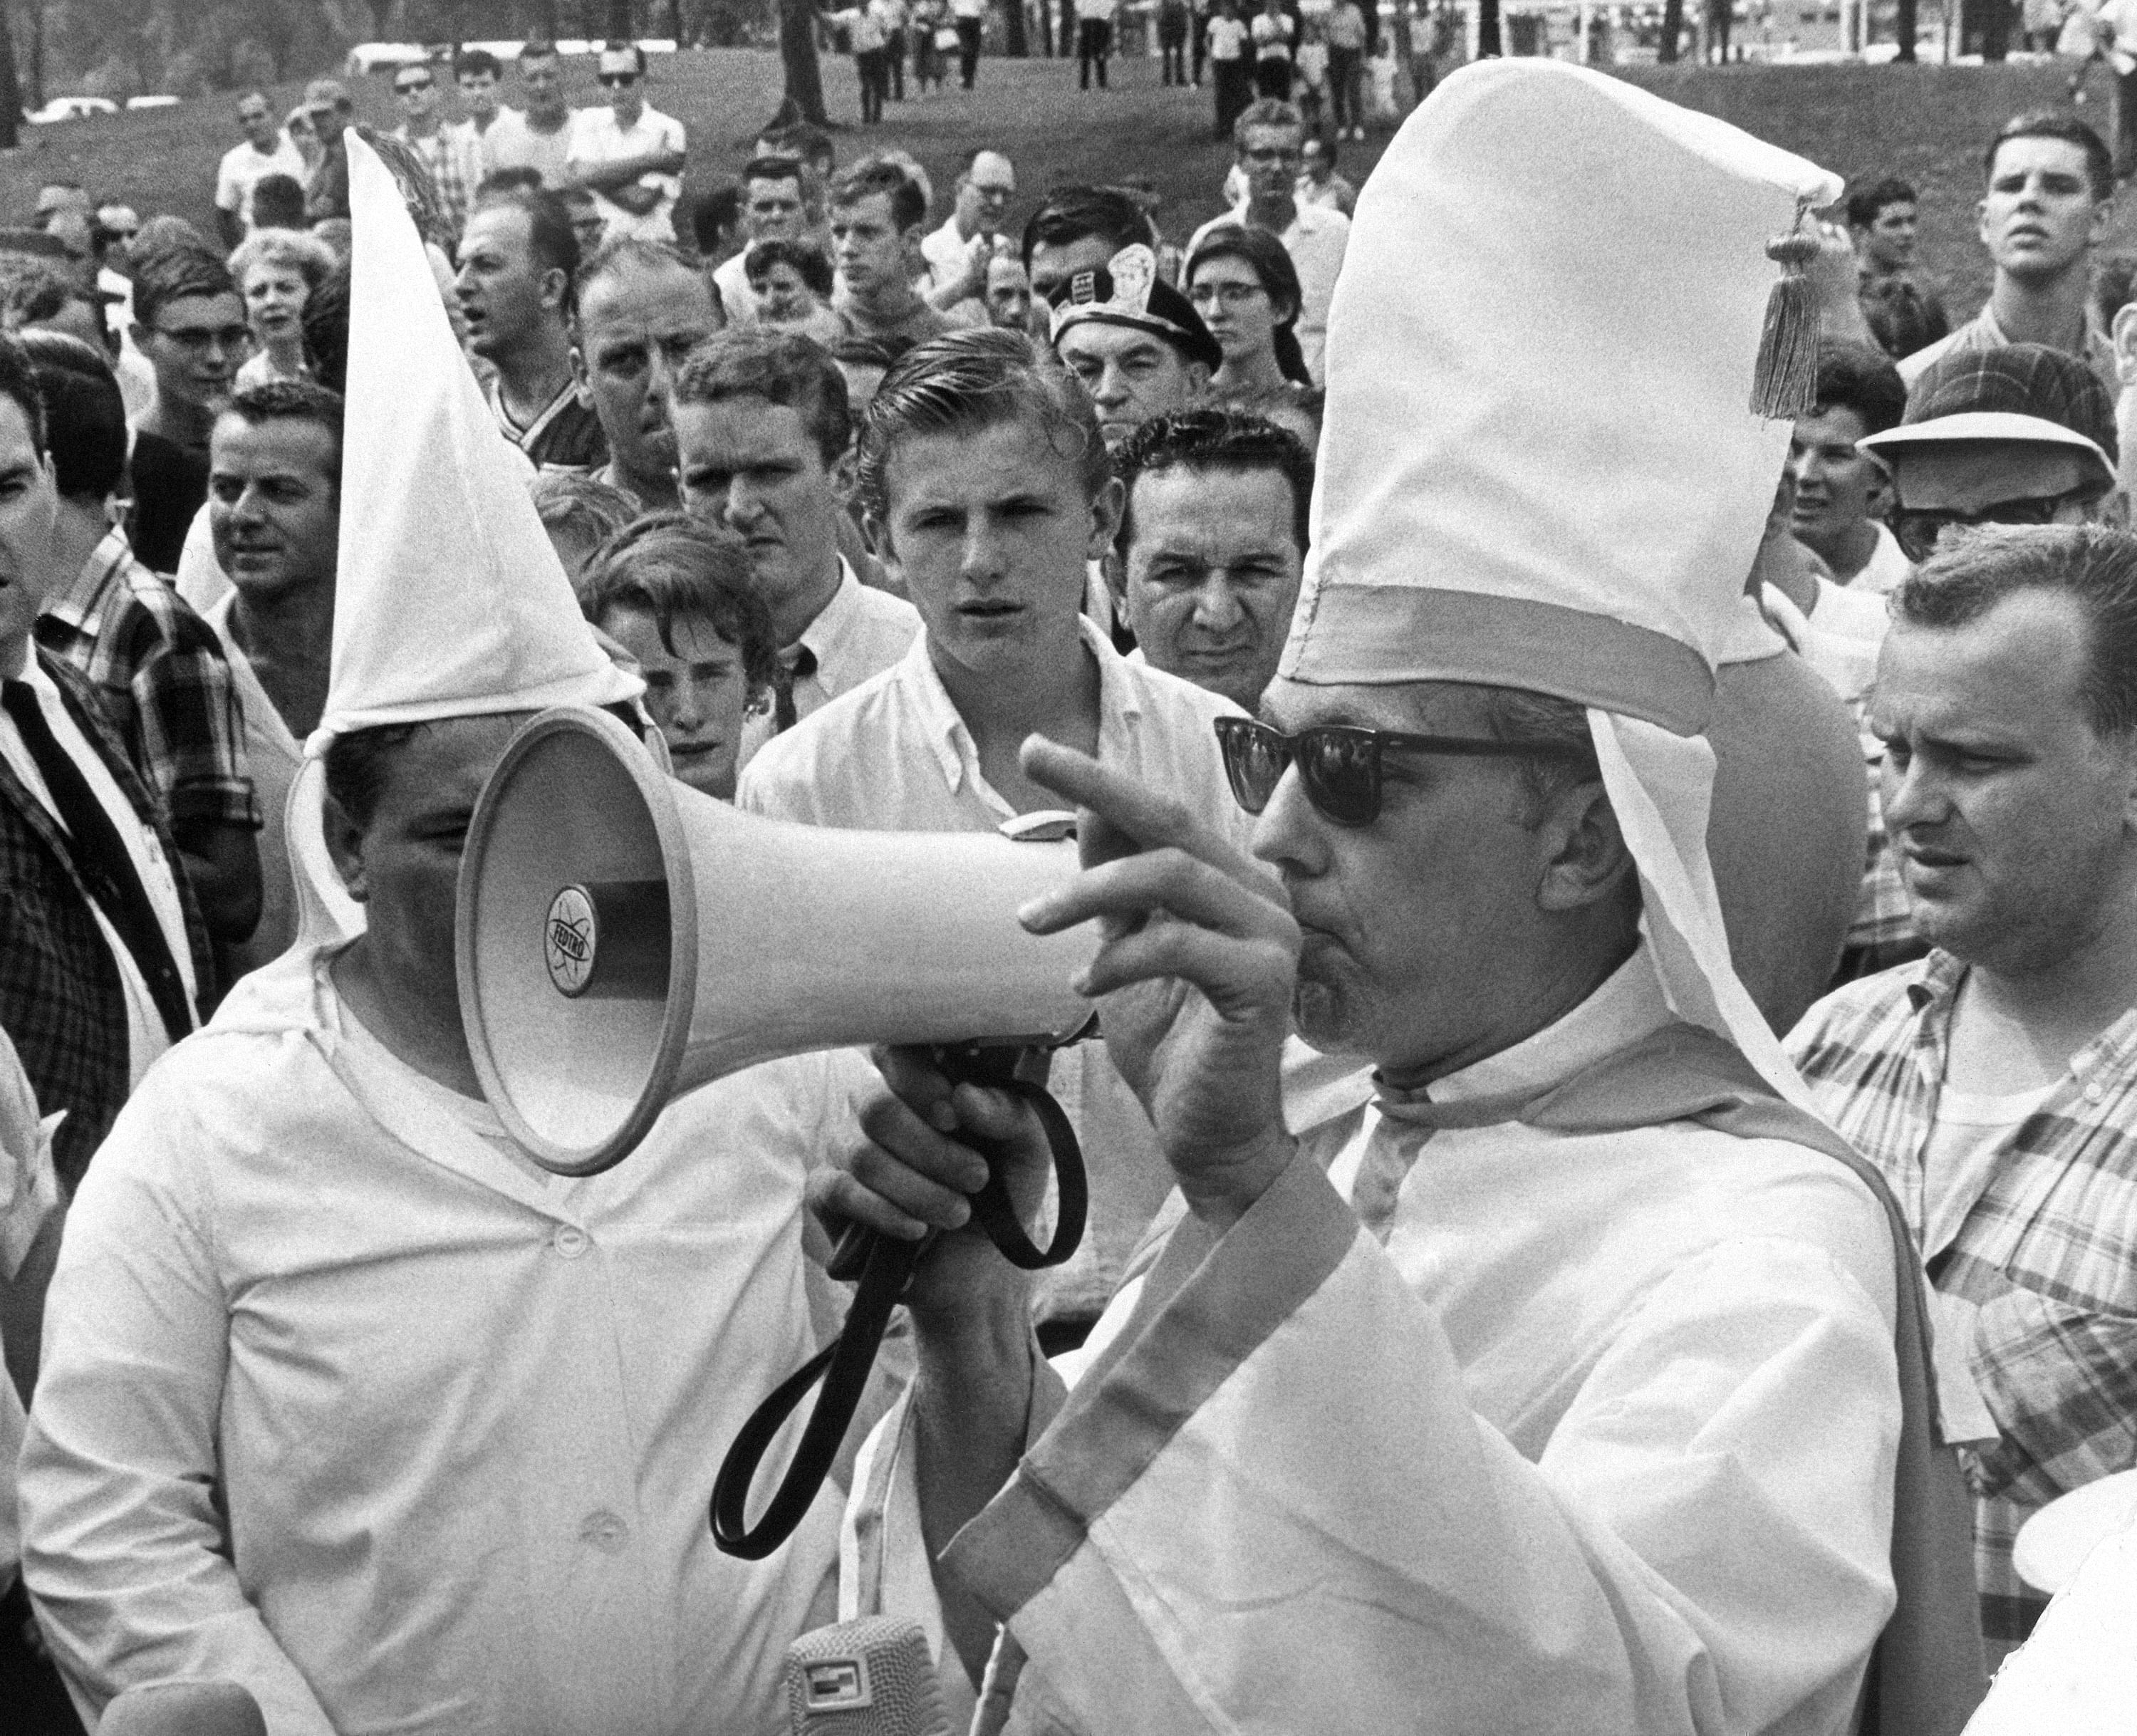 Man clad in Ku Klux Klan type robes uses bullhorn to address crowd in Marquette Park, Chicago on August 21, 1966 following rally staged by American Nazi Party. He was arrested for speaking without a permit and identified himself as Evan Lewis, 34, of